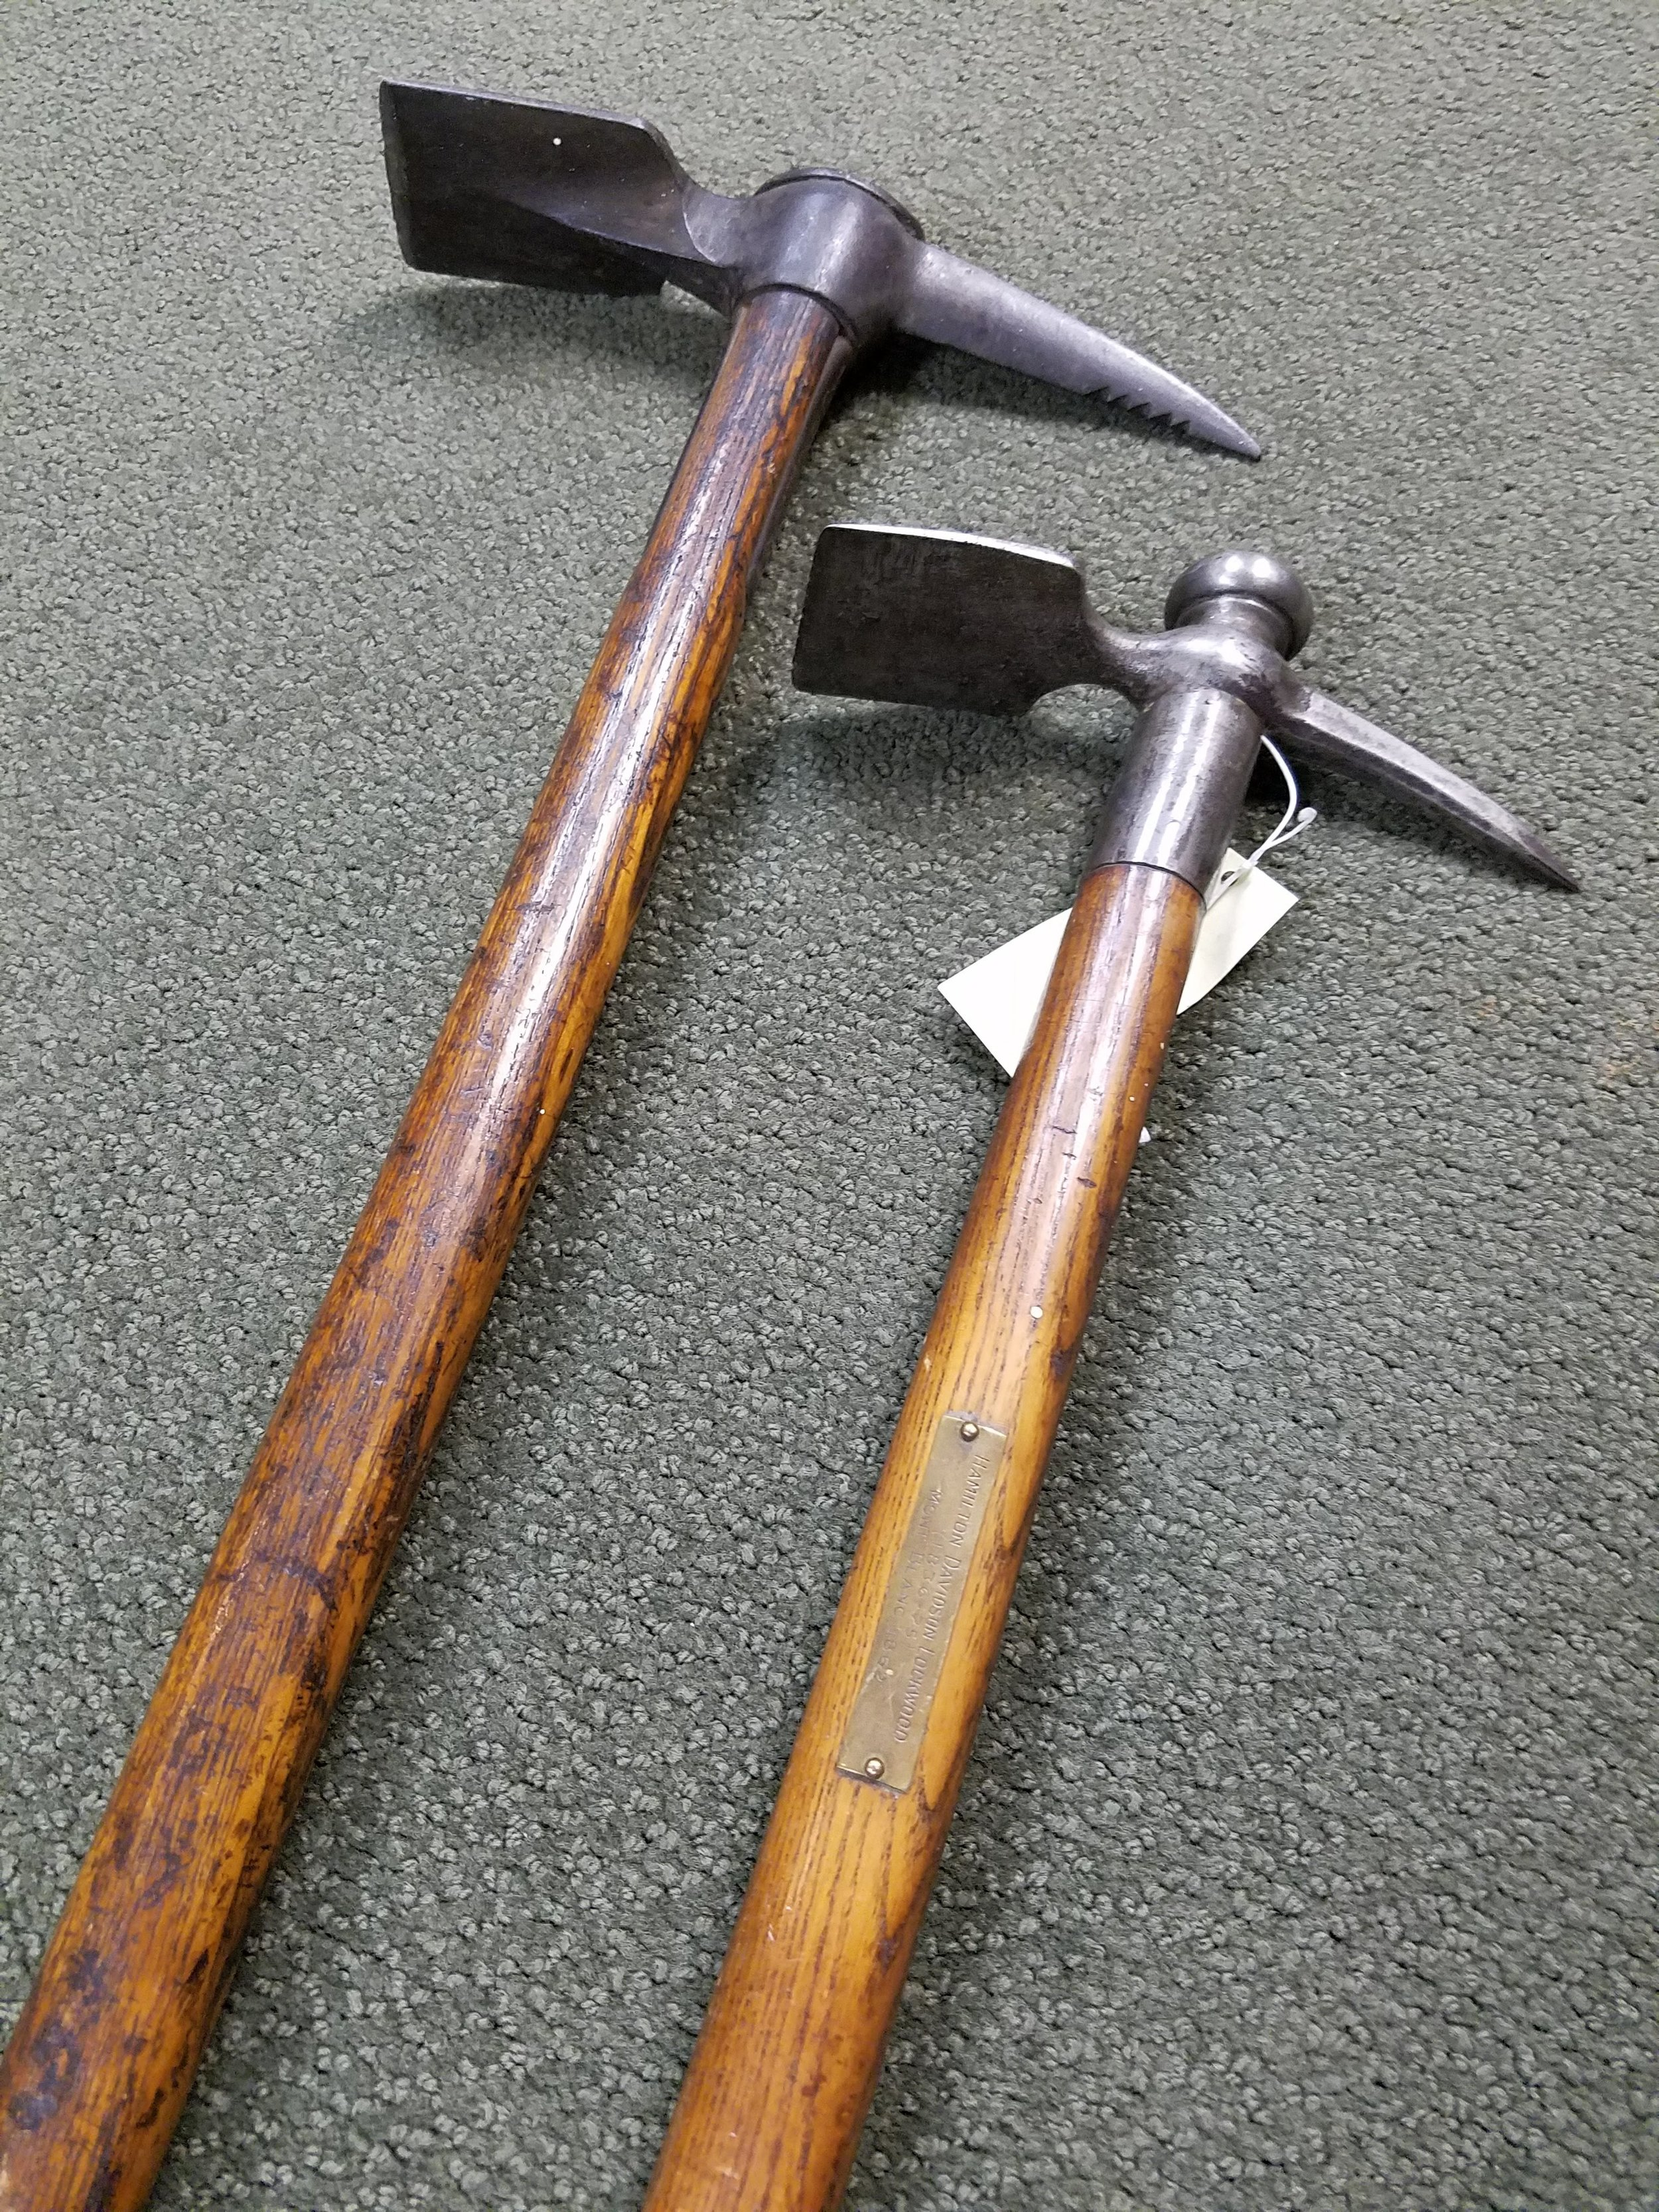 "Hamilton Davidson Lockwood's ice axe - inscribed on the metal plaque is: Mont Blanc 1862"" This was donated to the AAC archives by Mrs. Lockwood."